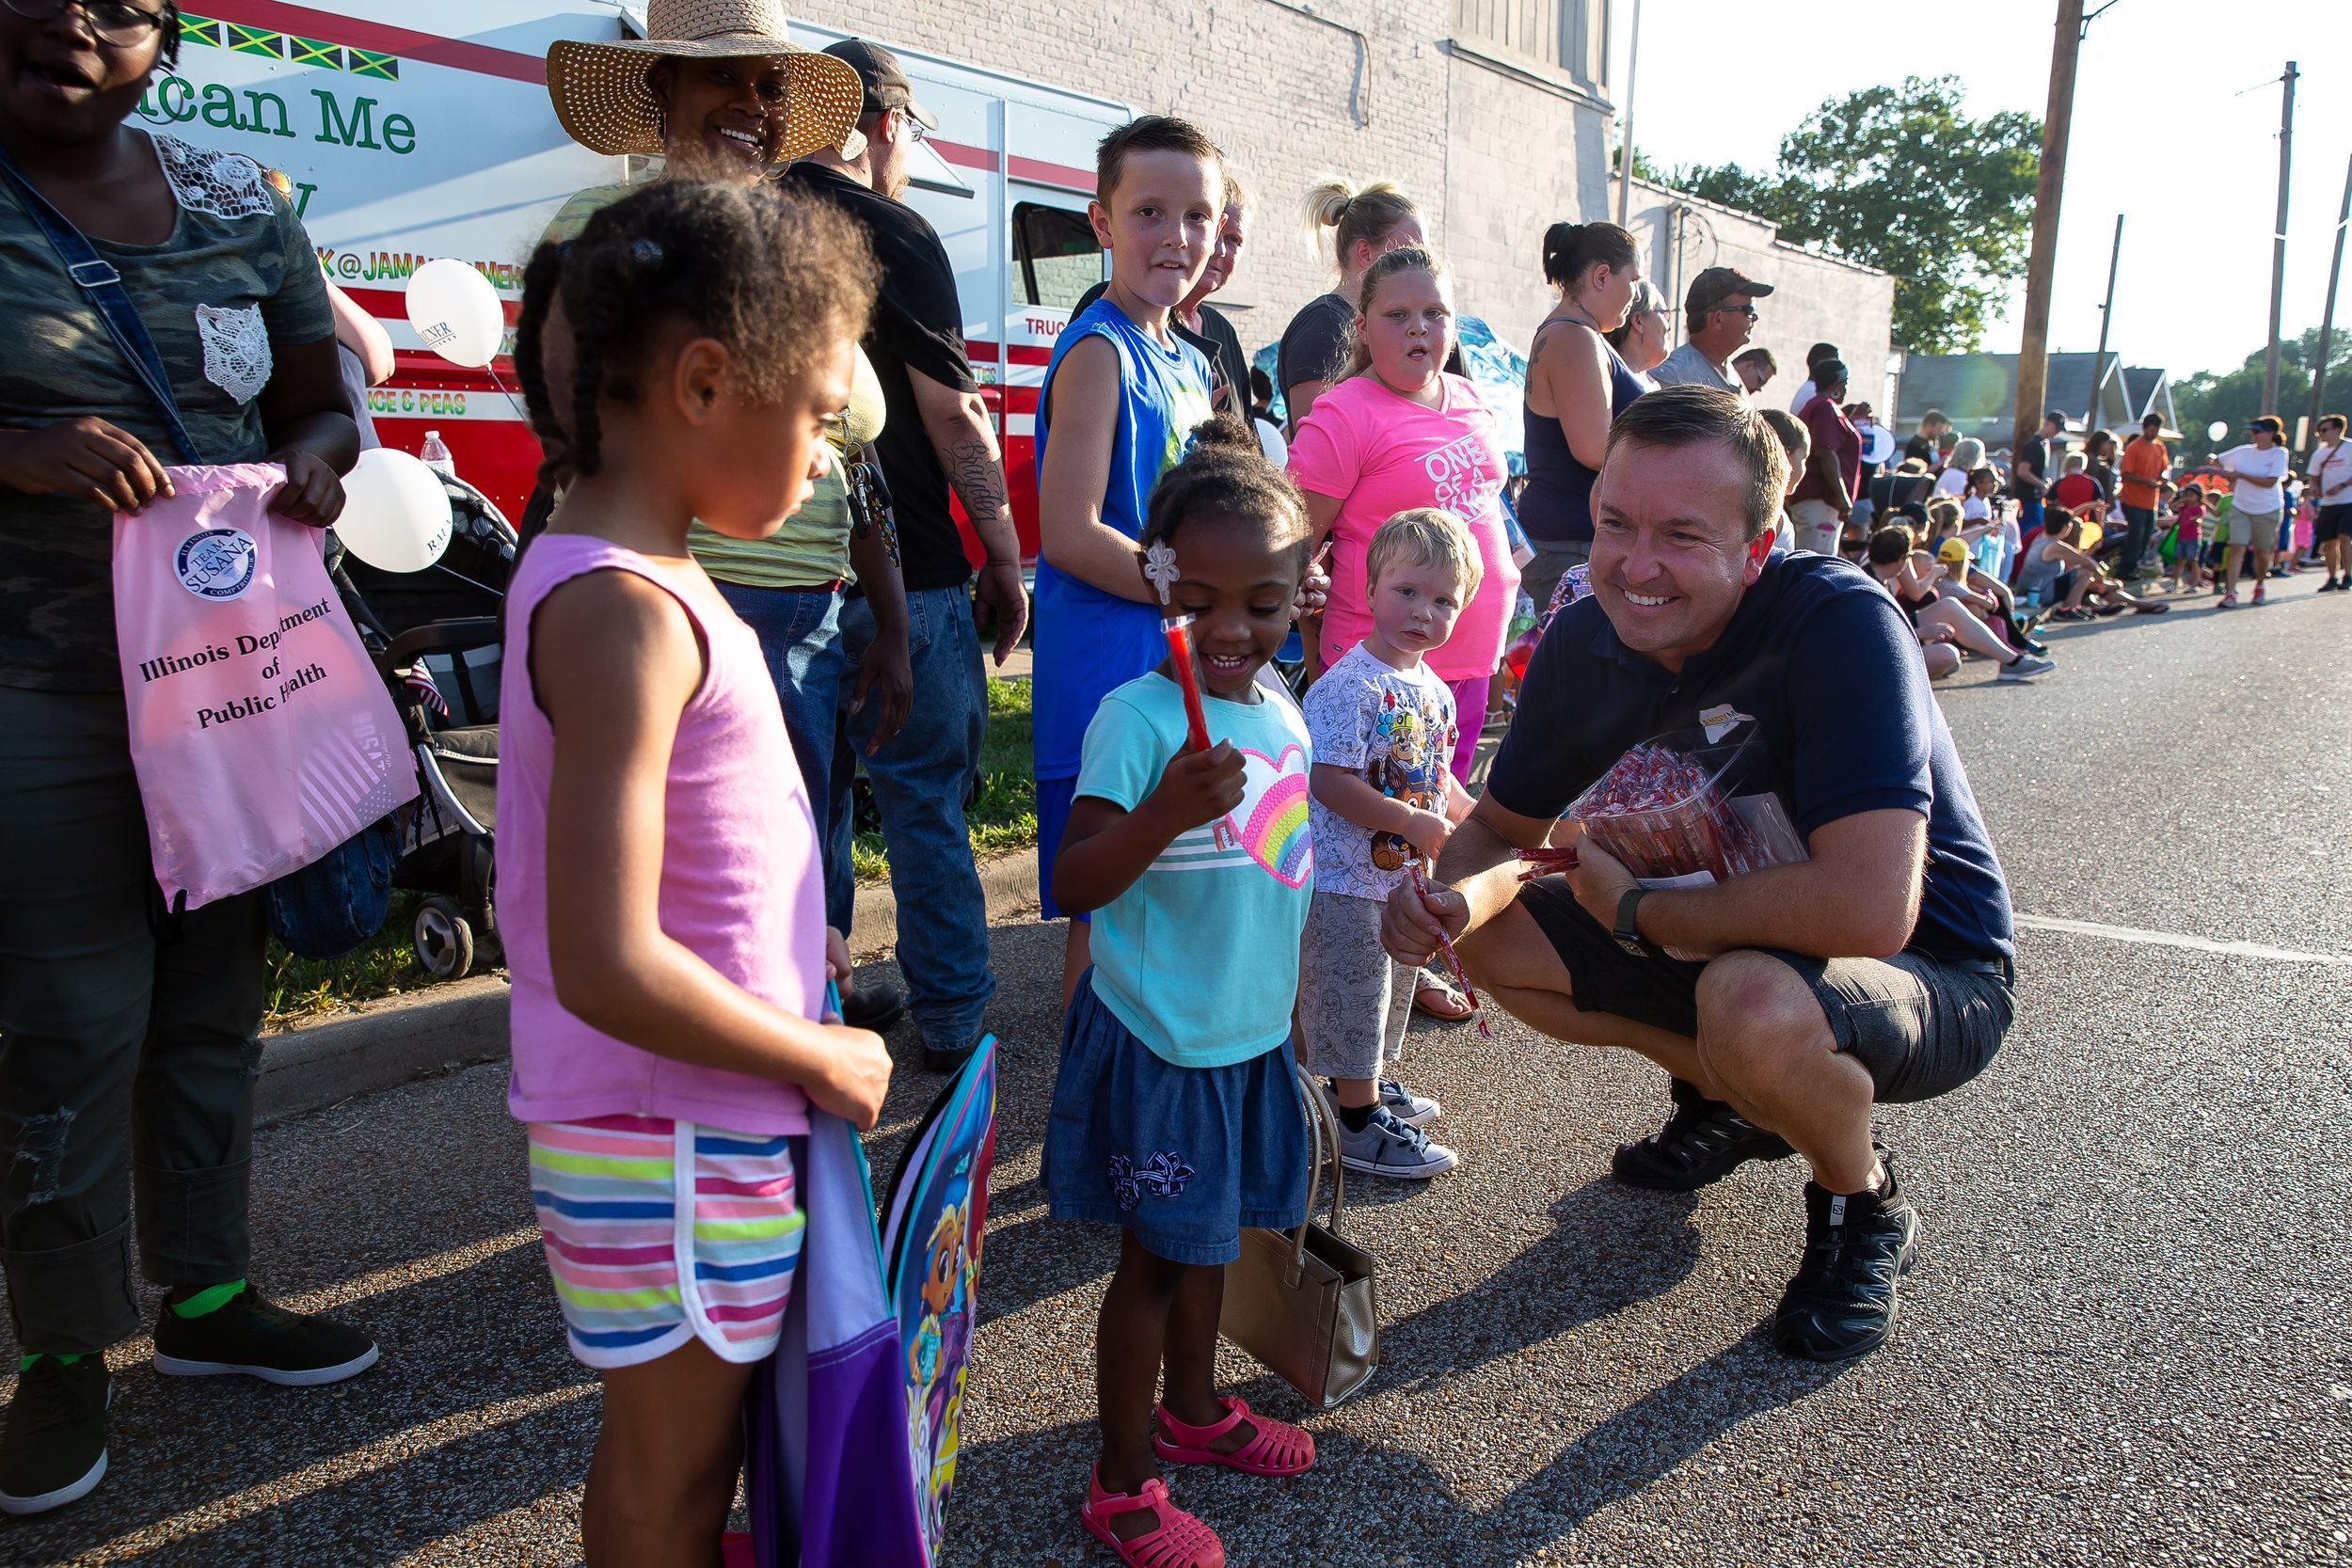 Illinois State Sen. Andy Manar, D-Bunker Hill, hands out Twizzlers to youth outside of the Main Gate during the Illinois State Fair Twilight Parade, Thursday, Aug. 9, 2018, in Springfield, Ill. [Justin L. Fowler/The State Journal-Register]